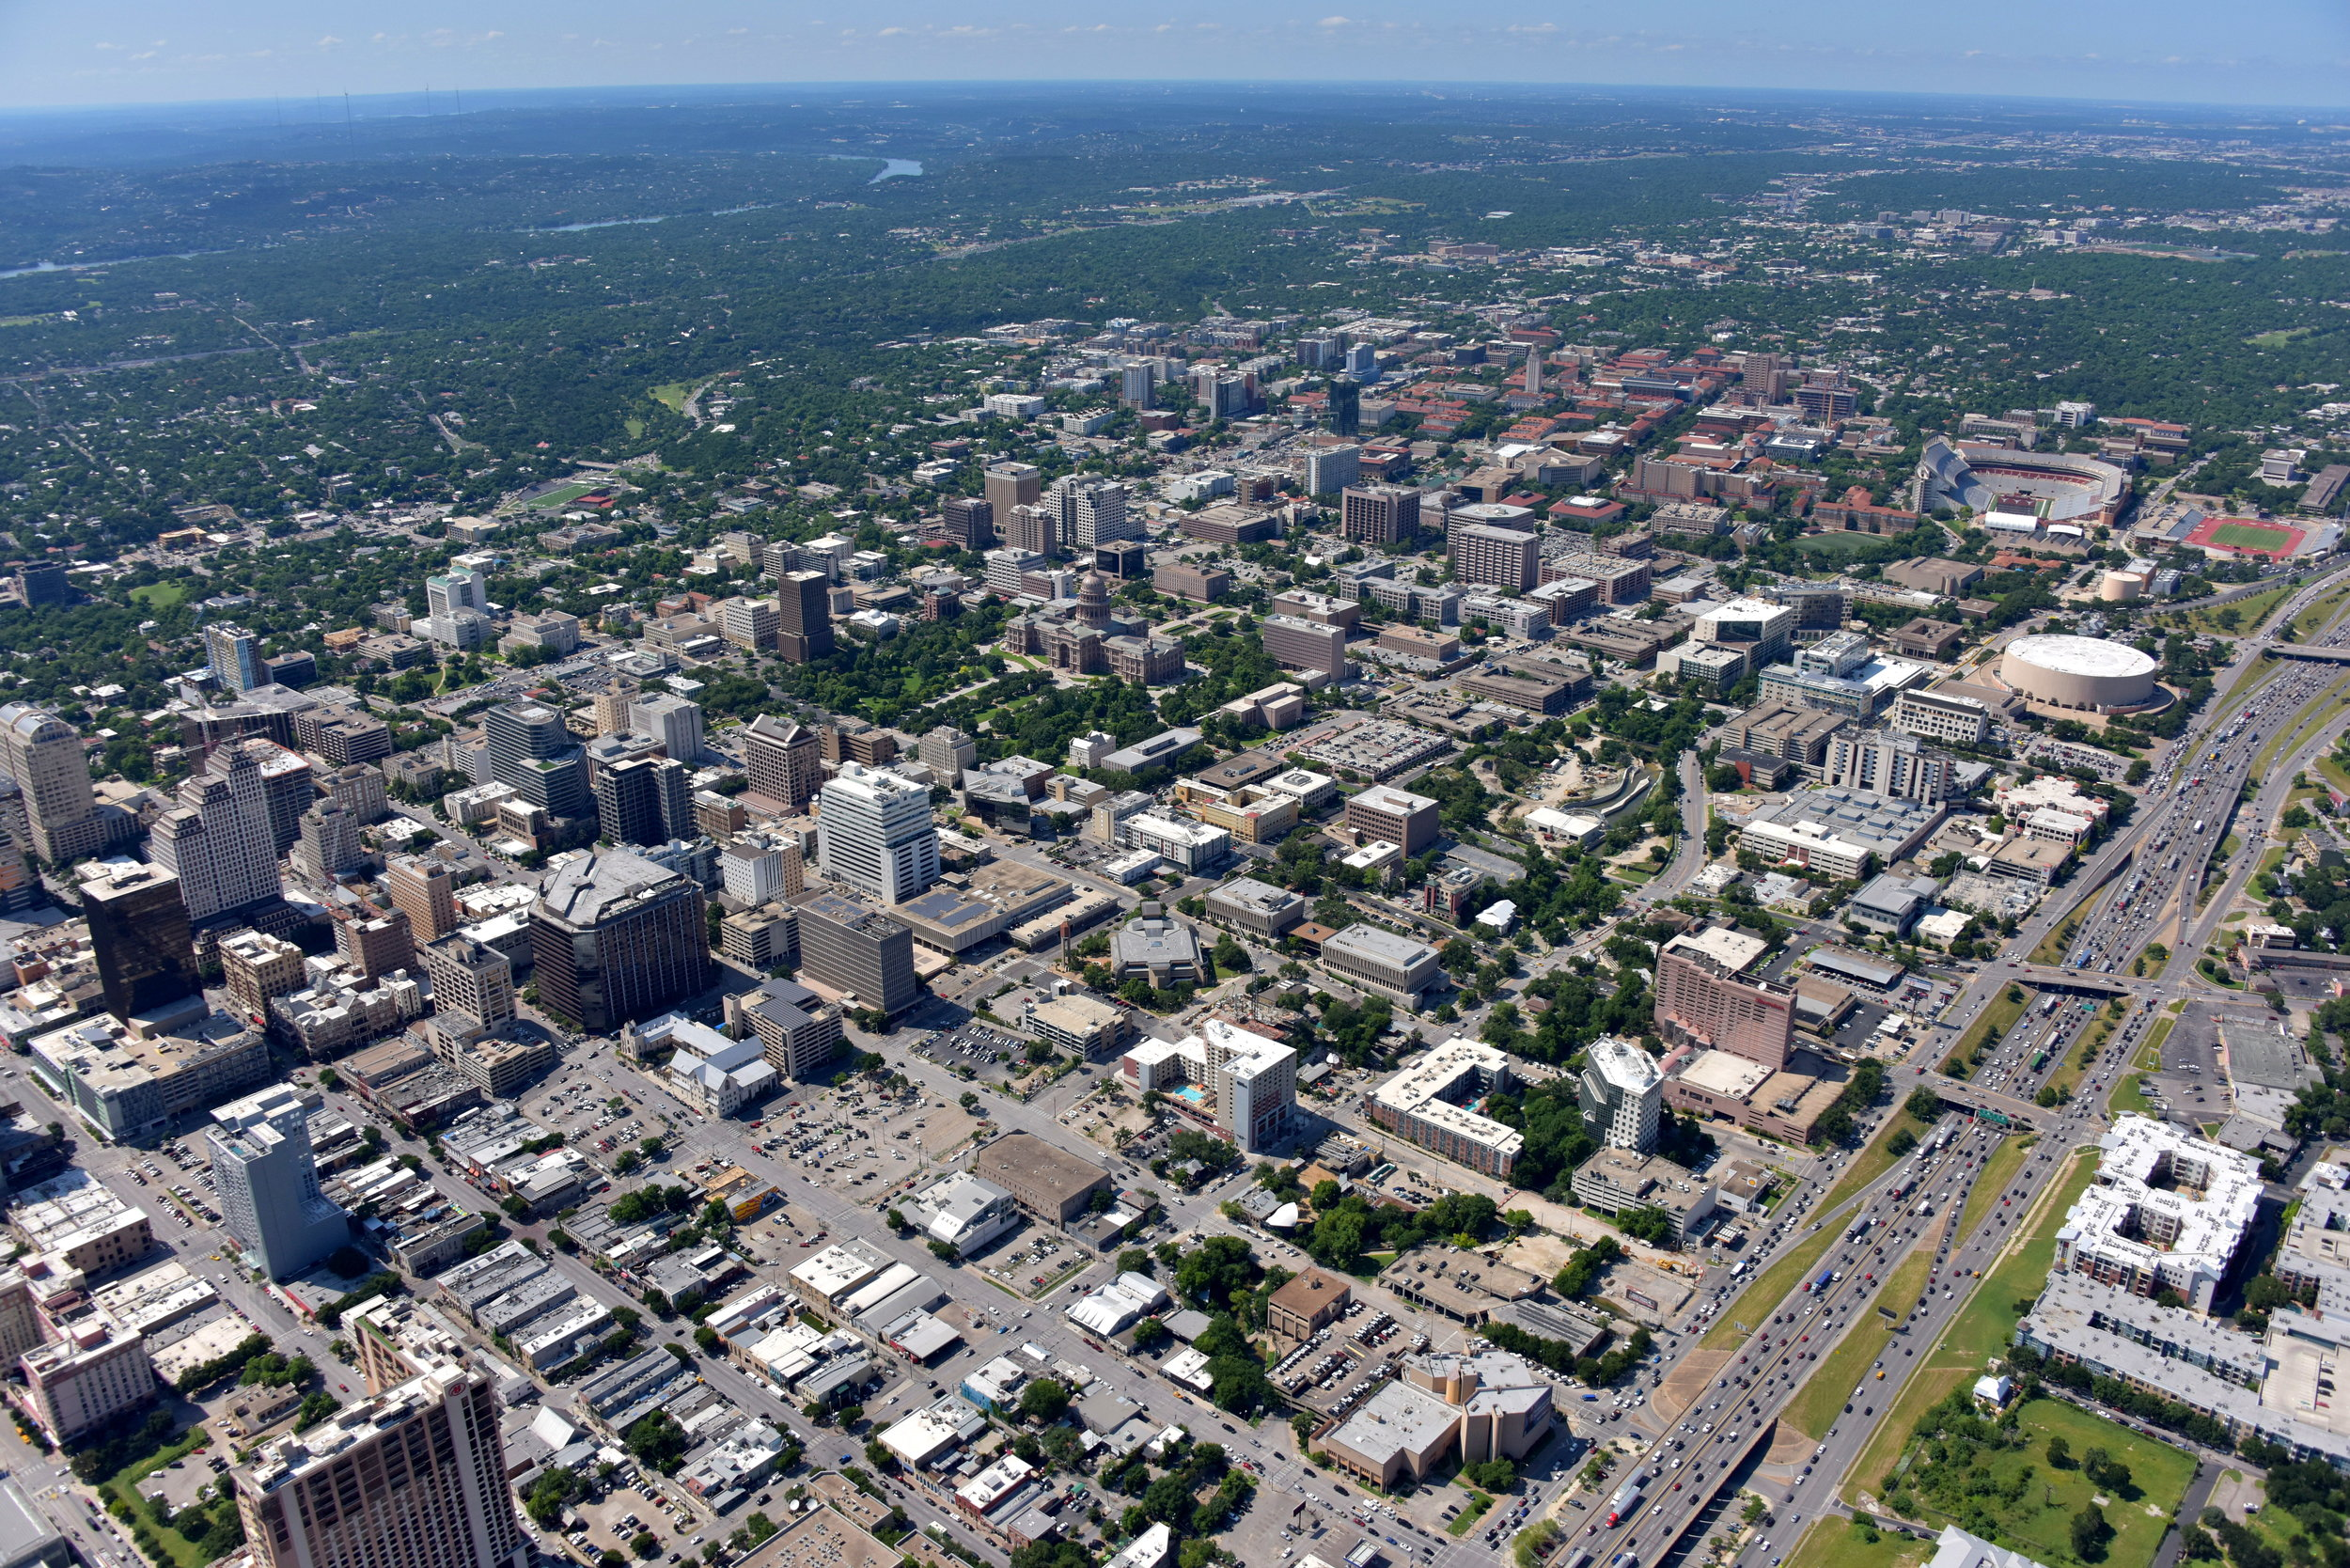 Downtown CBD, Texas State Capitol and The University of Texas, Austin, Texas - Austin Aerial Photography - Austin, TX